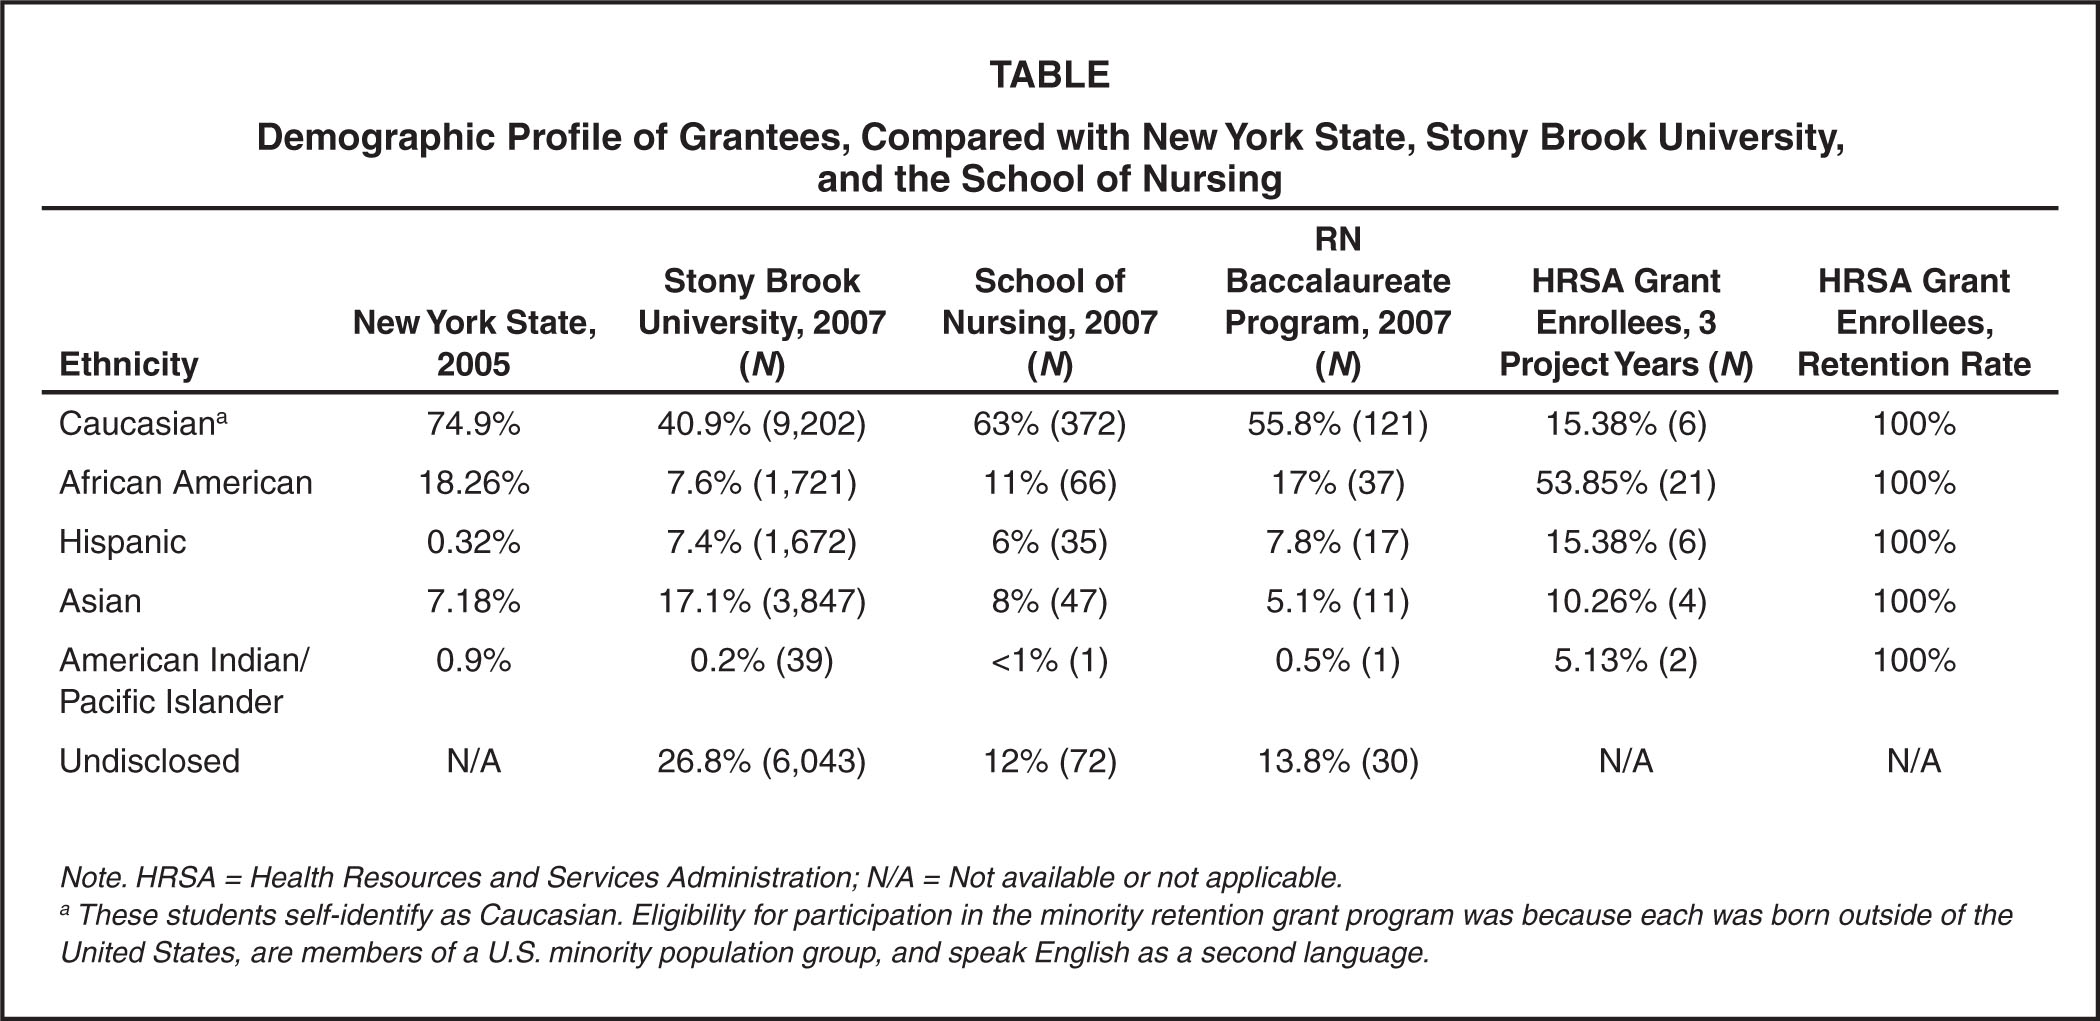 Demographic Profile of Grantees, Compared with New York State, Stony Brook University, and the School of Nursing